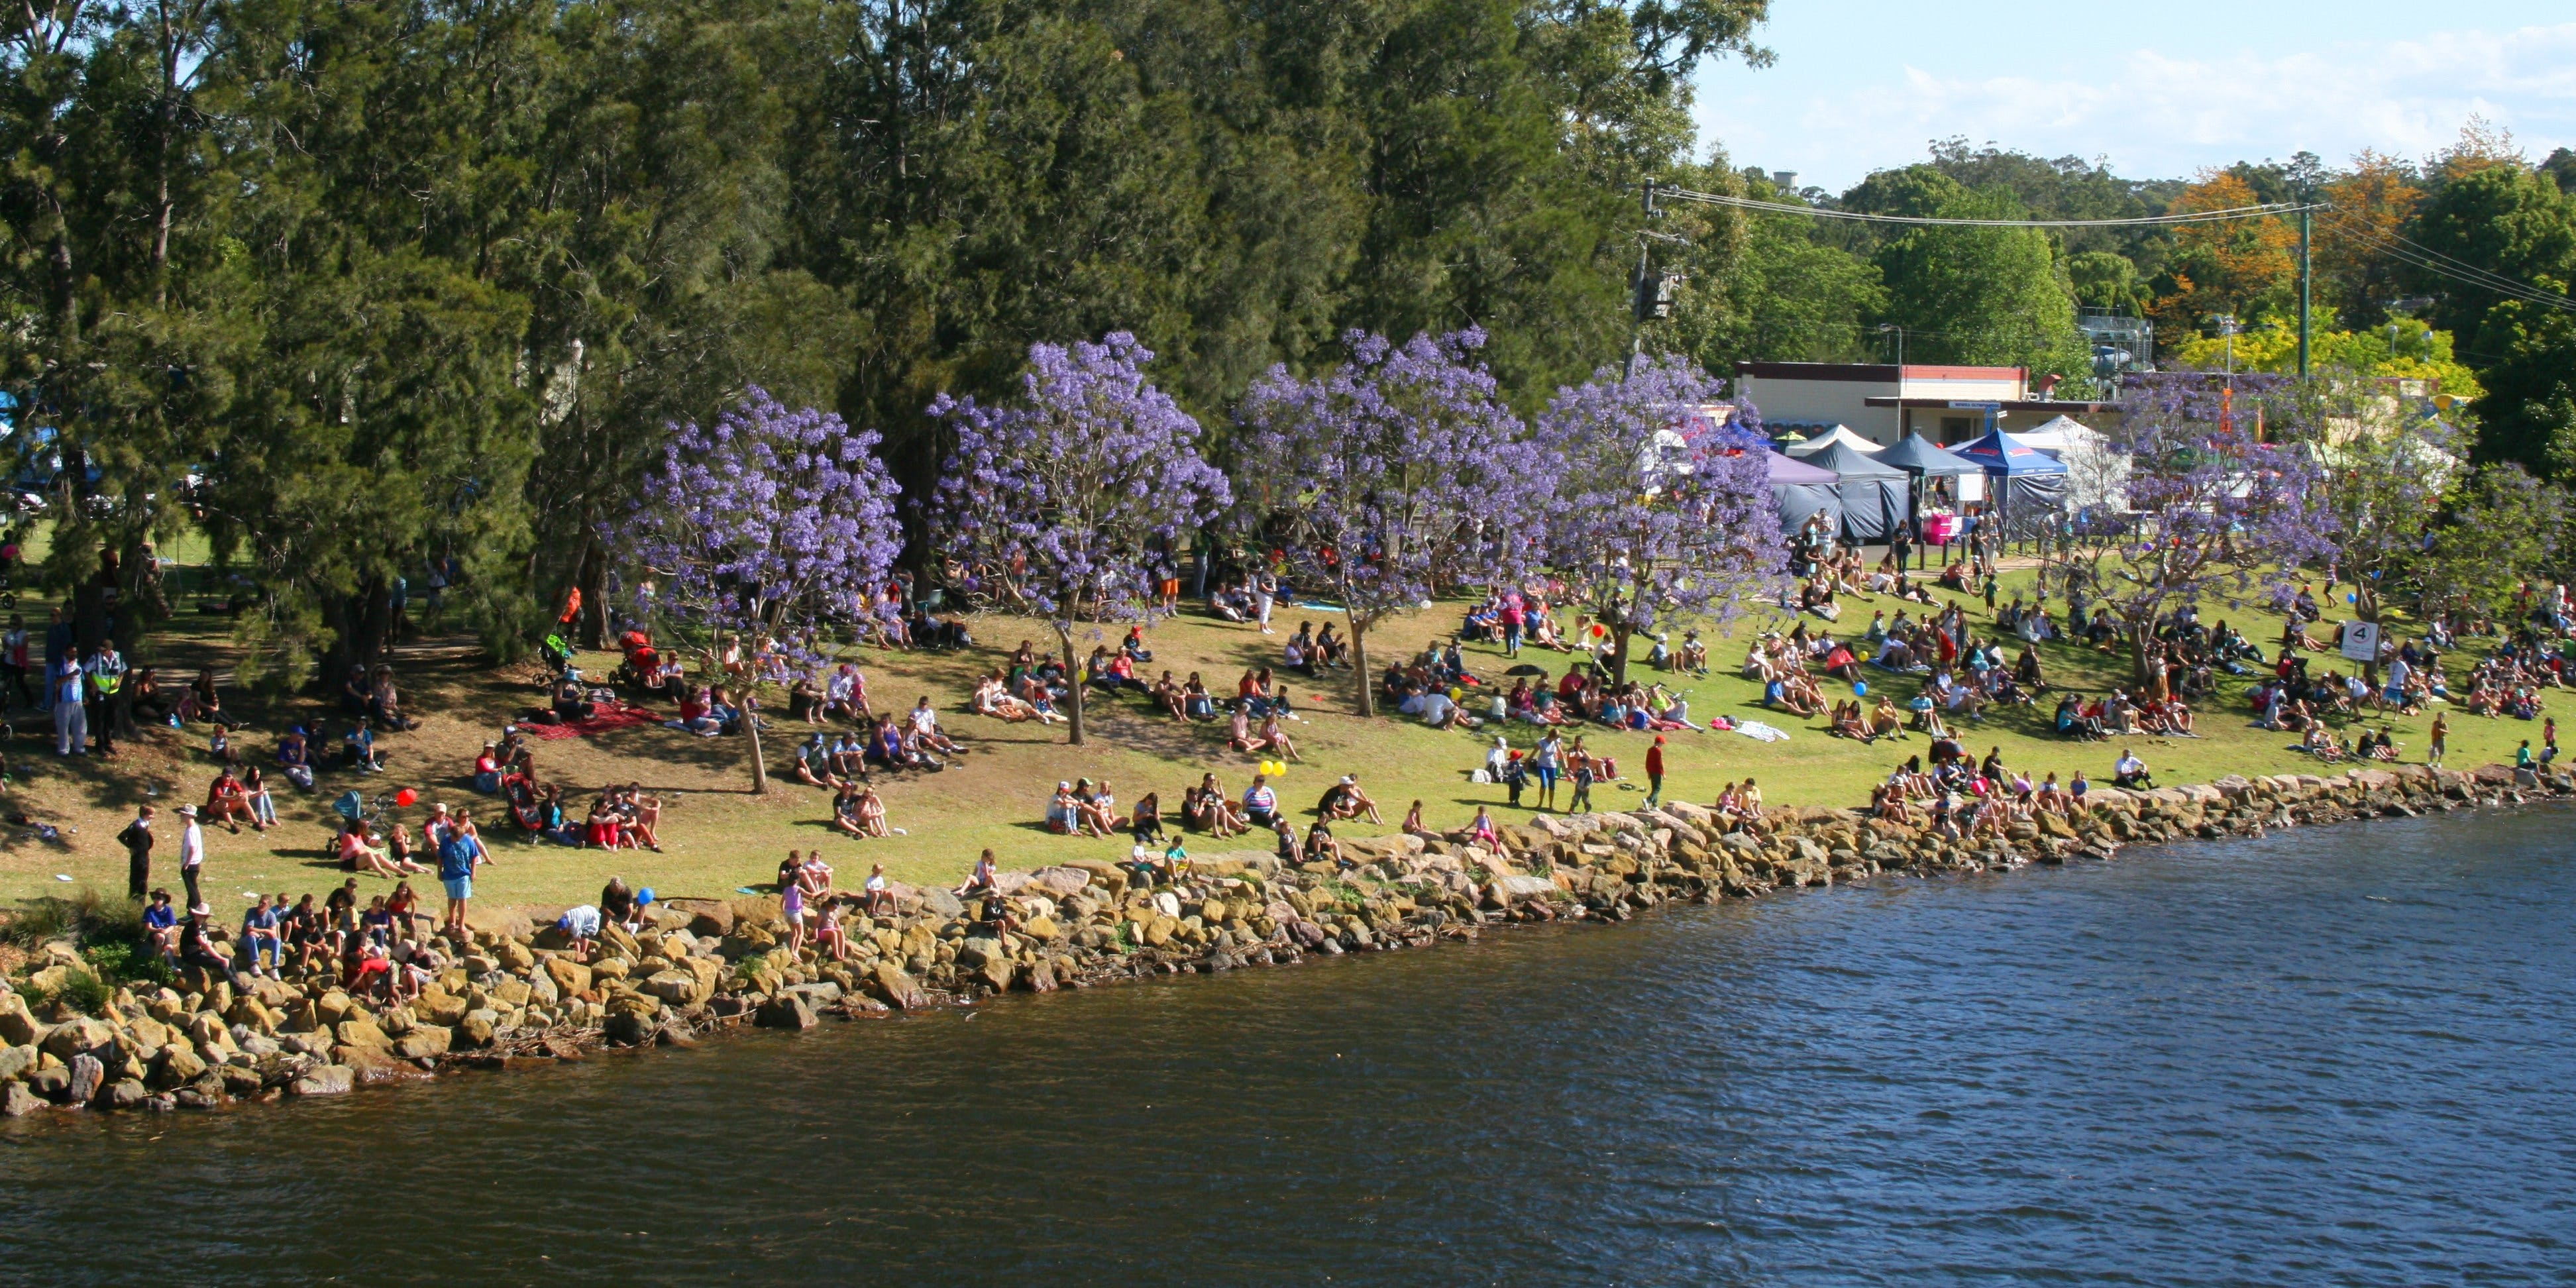 Shoalhaven River Festival - Accommodation in Surfers Paradise